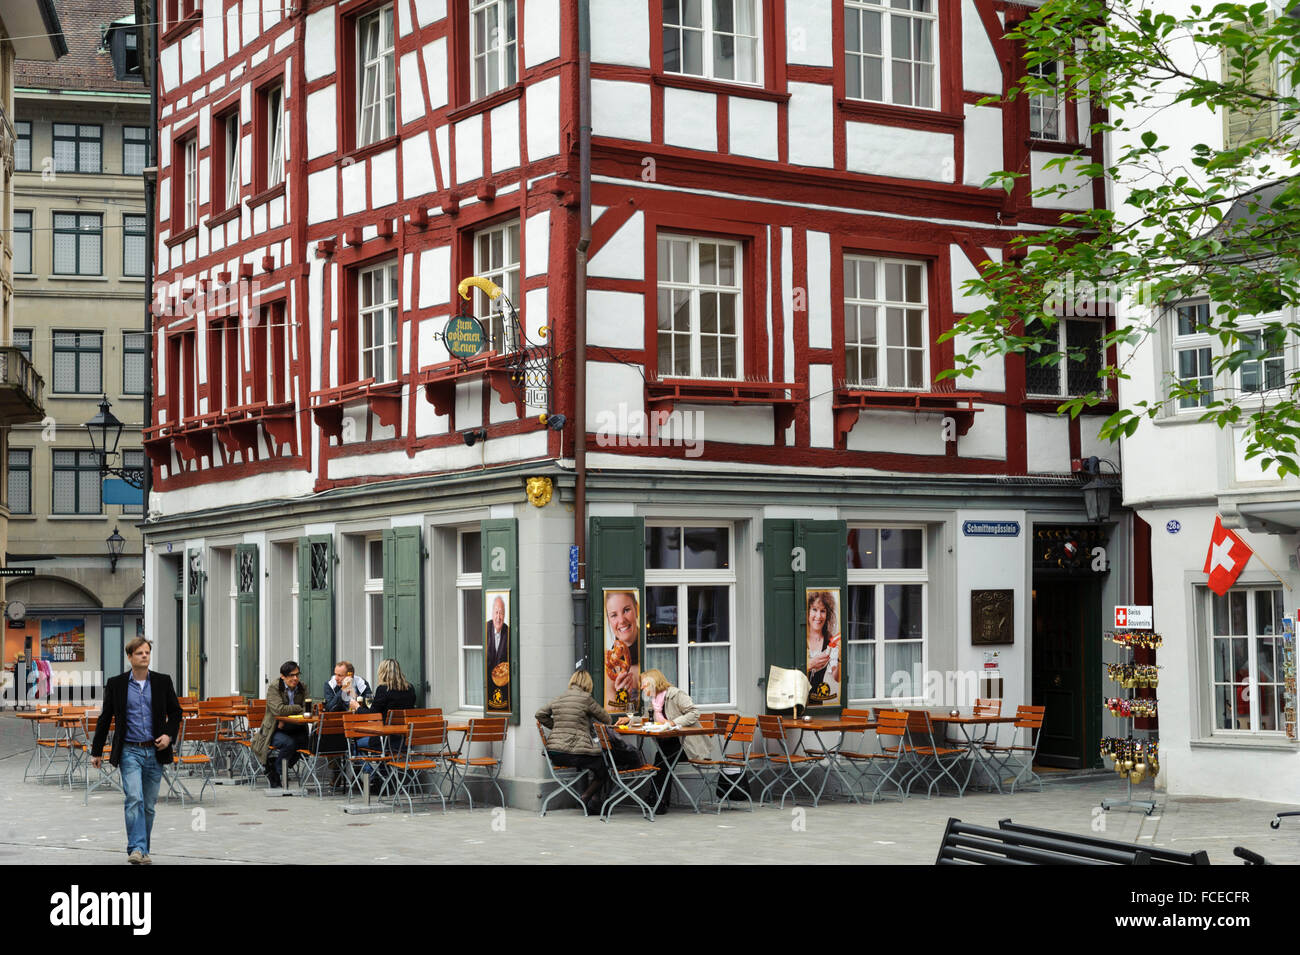 altstadt st gallen kanton st gallen schweiz old town of st stock photo royalty free image. Black Bedroom Furniture Sets. Home Design Ideas